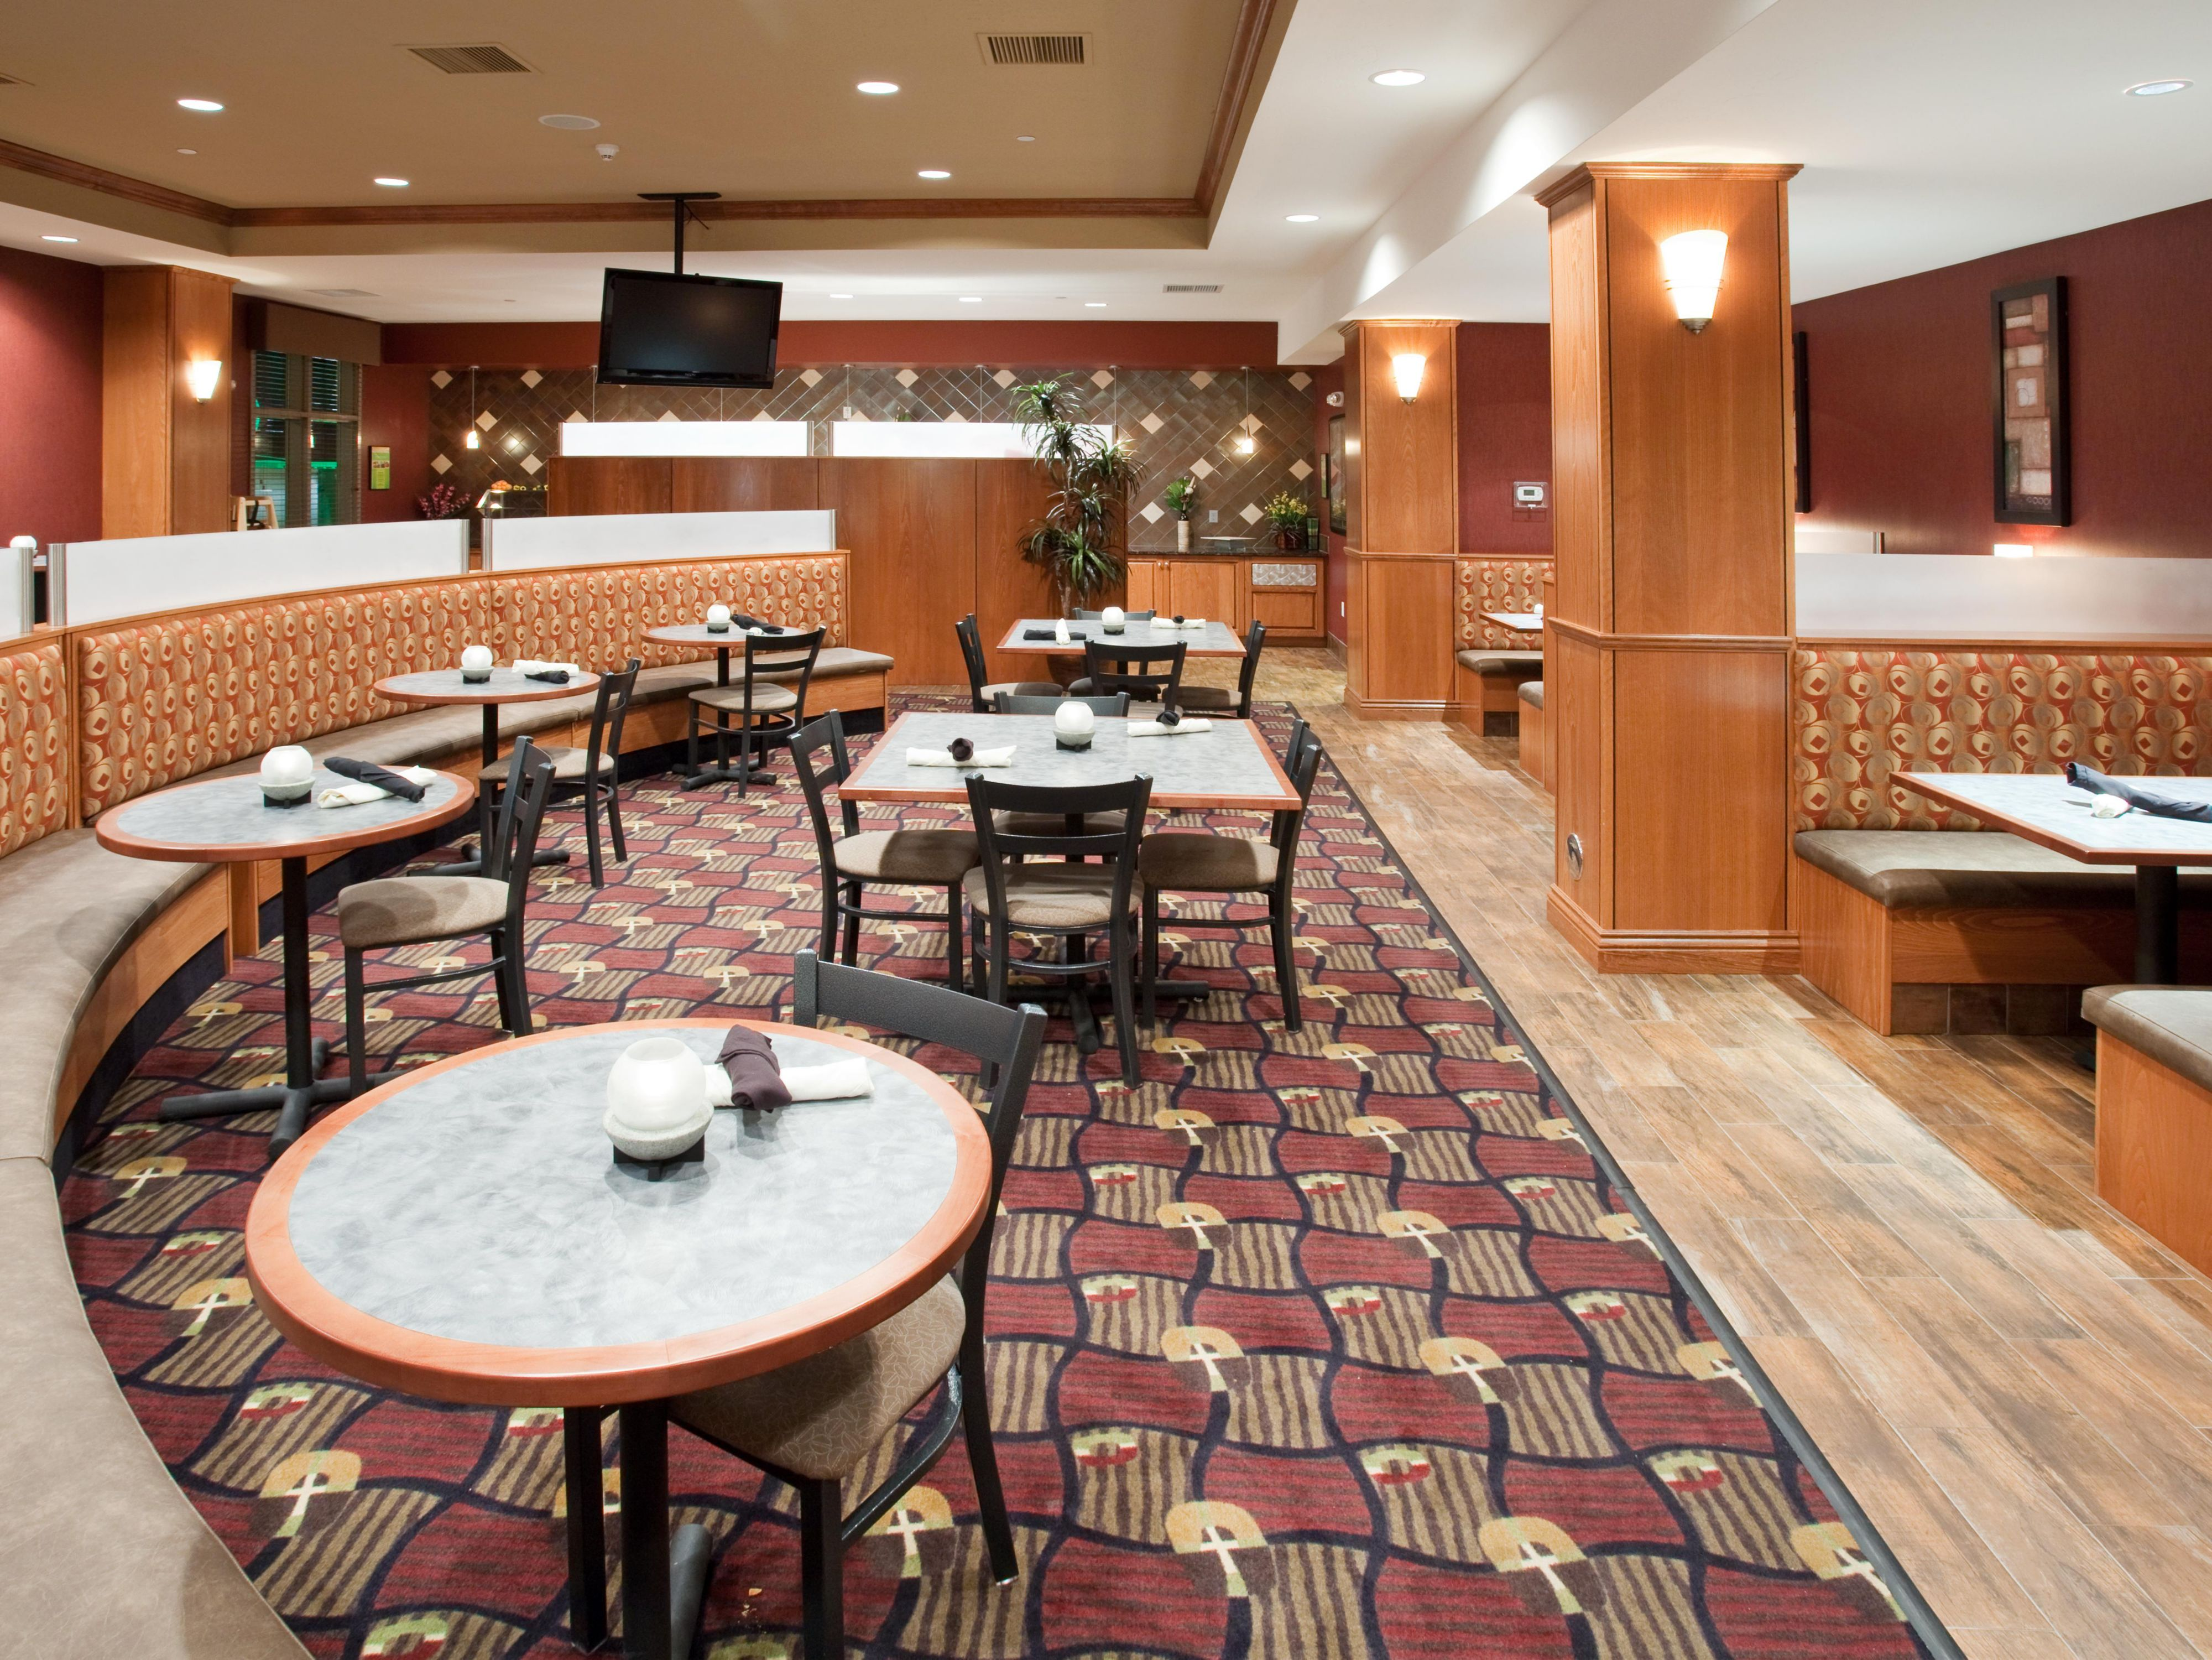 Enjoy a Cook to Order Breakfast Daily in the Grand Valley Grill